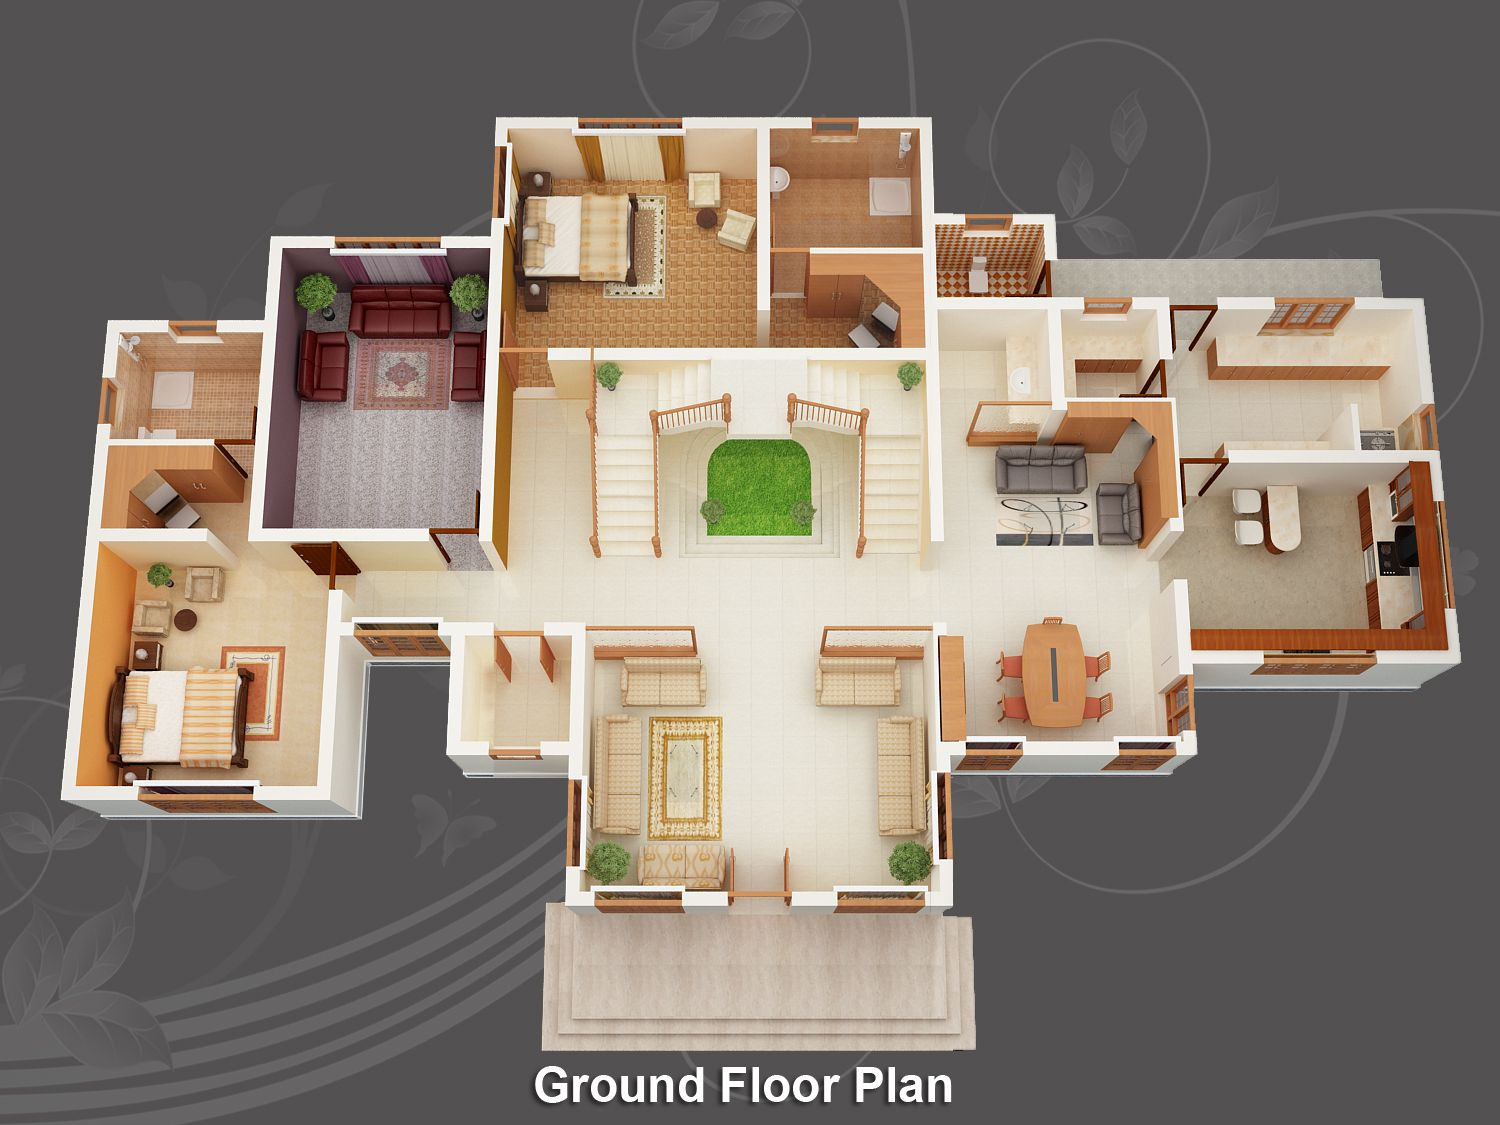 Image for free home design plans 3d wallpaper desktop House plan design free download